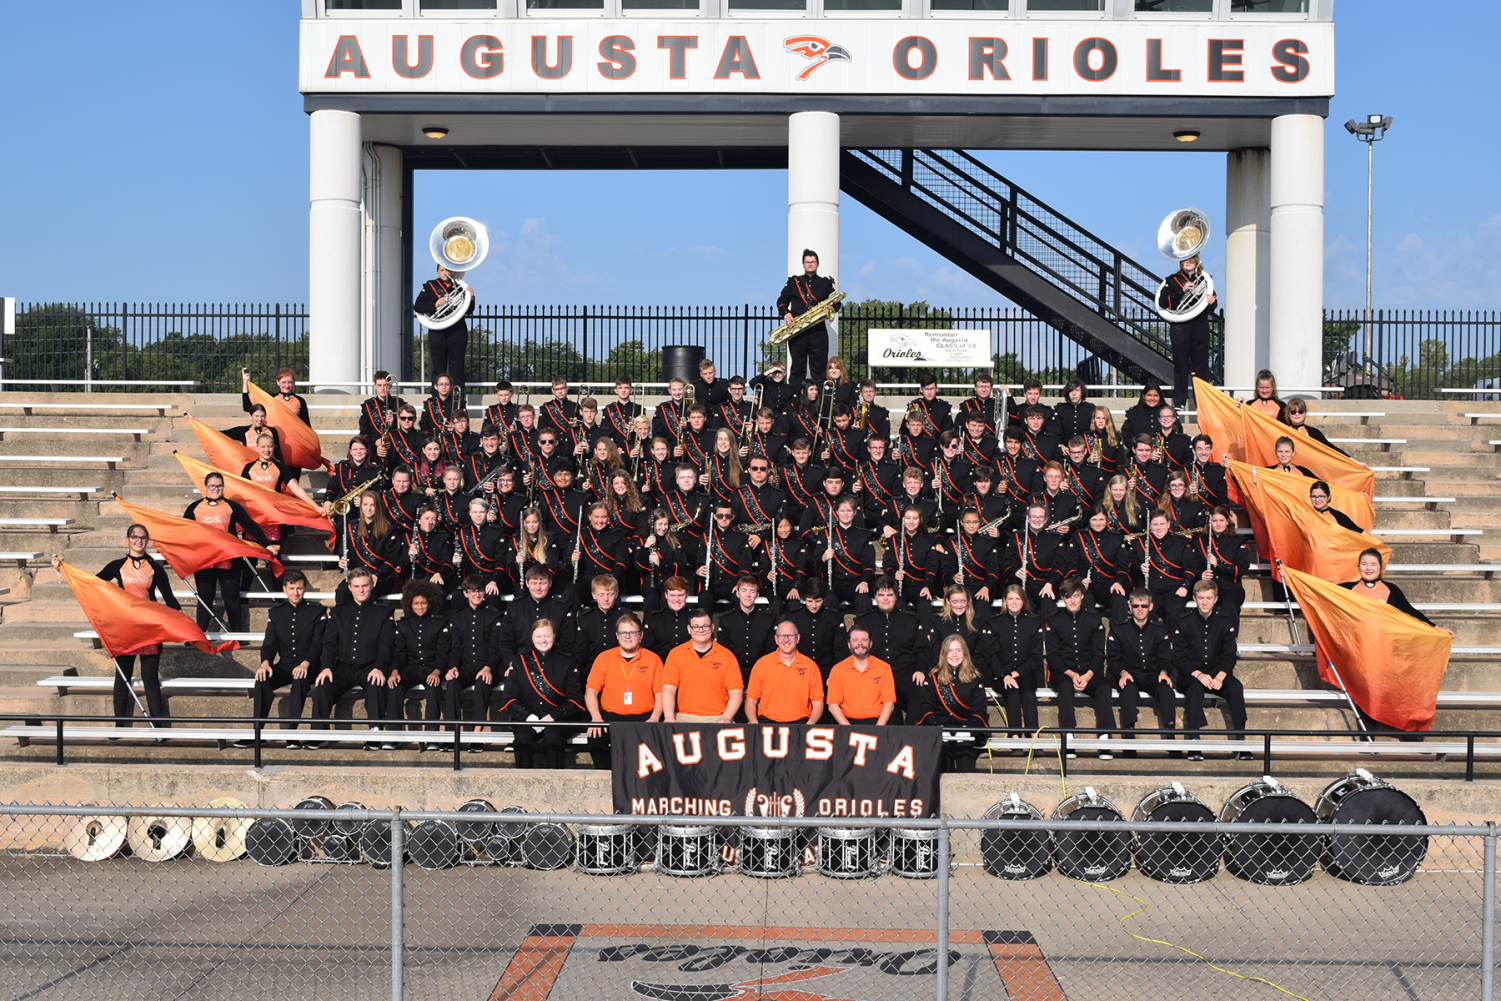 The band and color guard smiles for the annual marching band picture. The band rushed to get ready after their early morning practice.